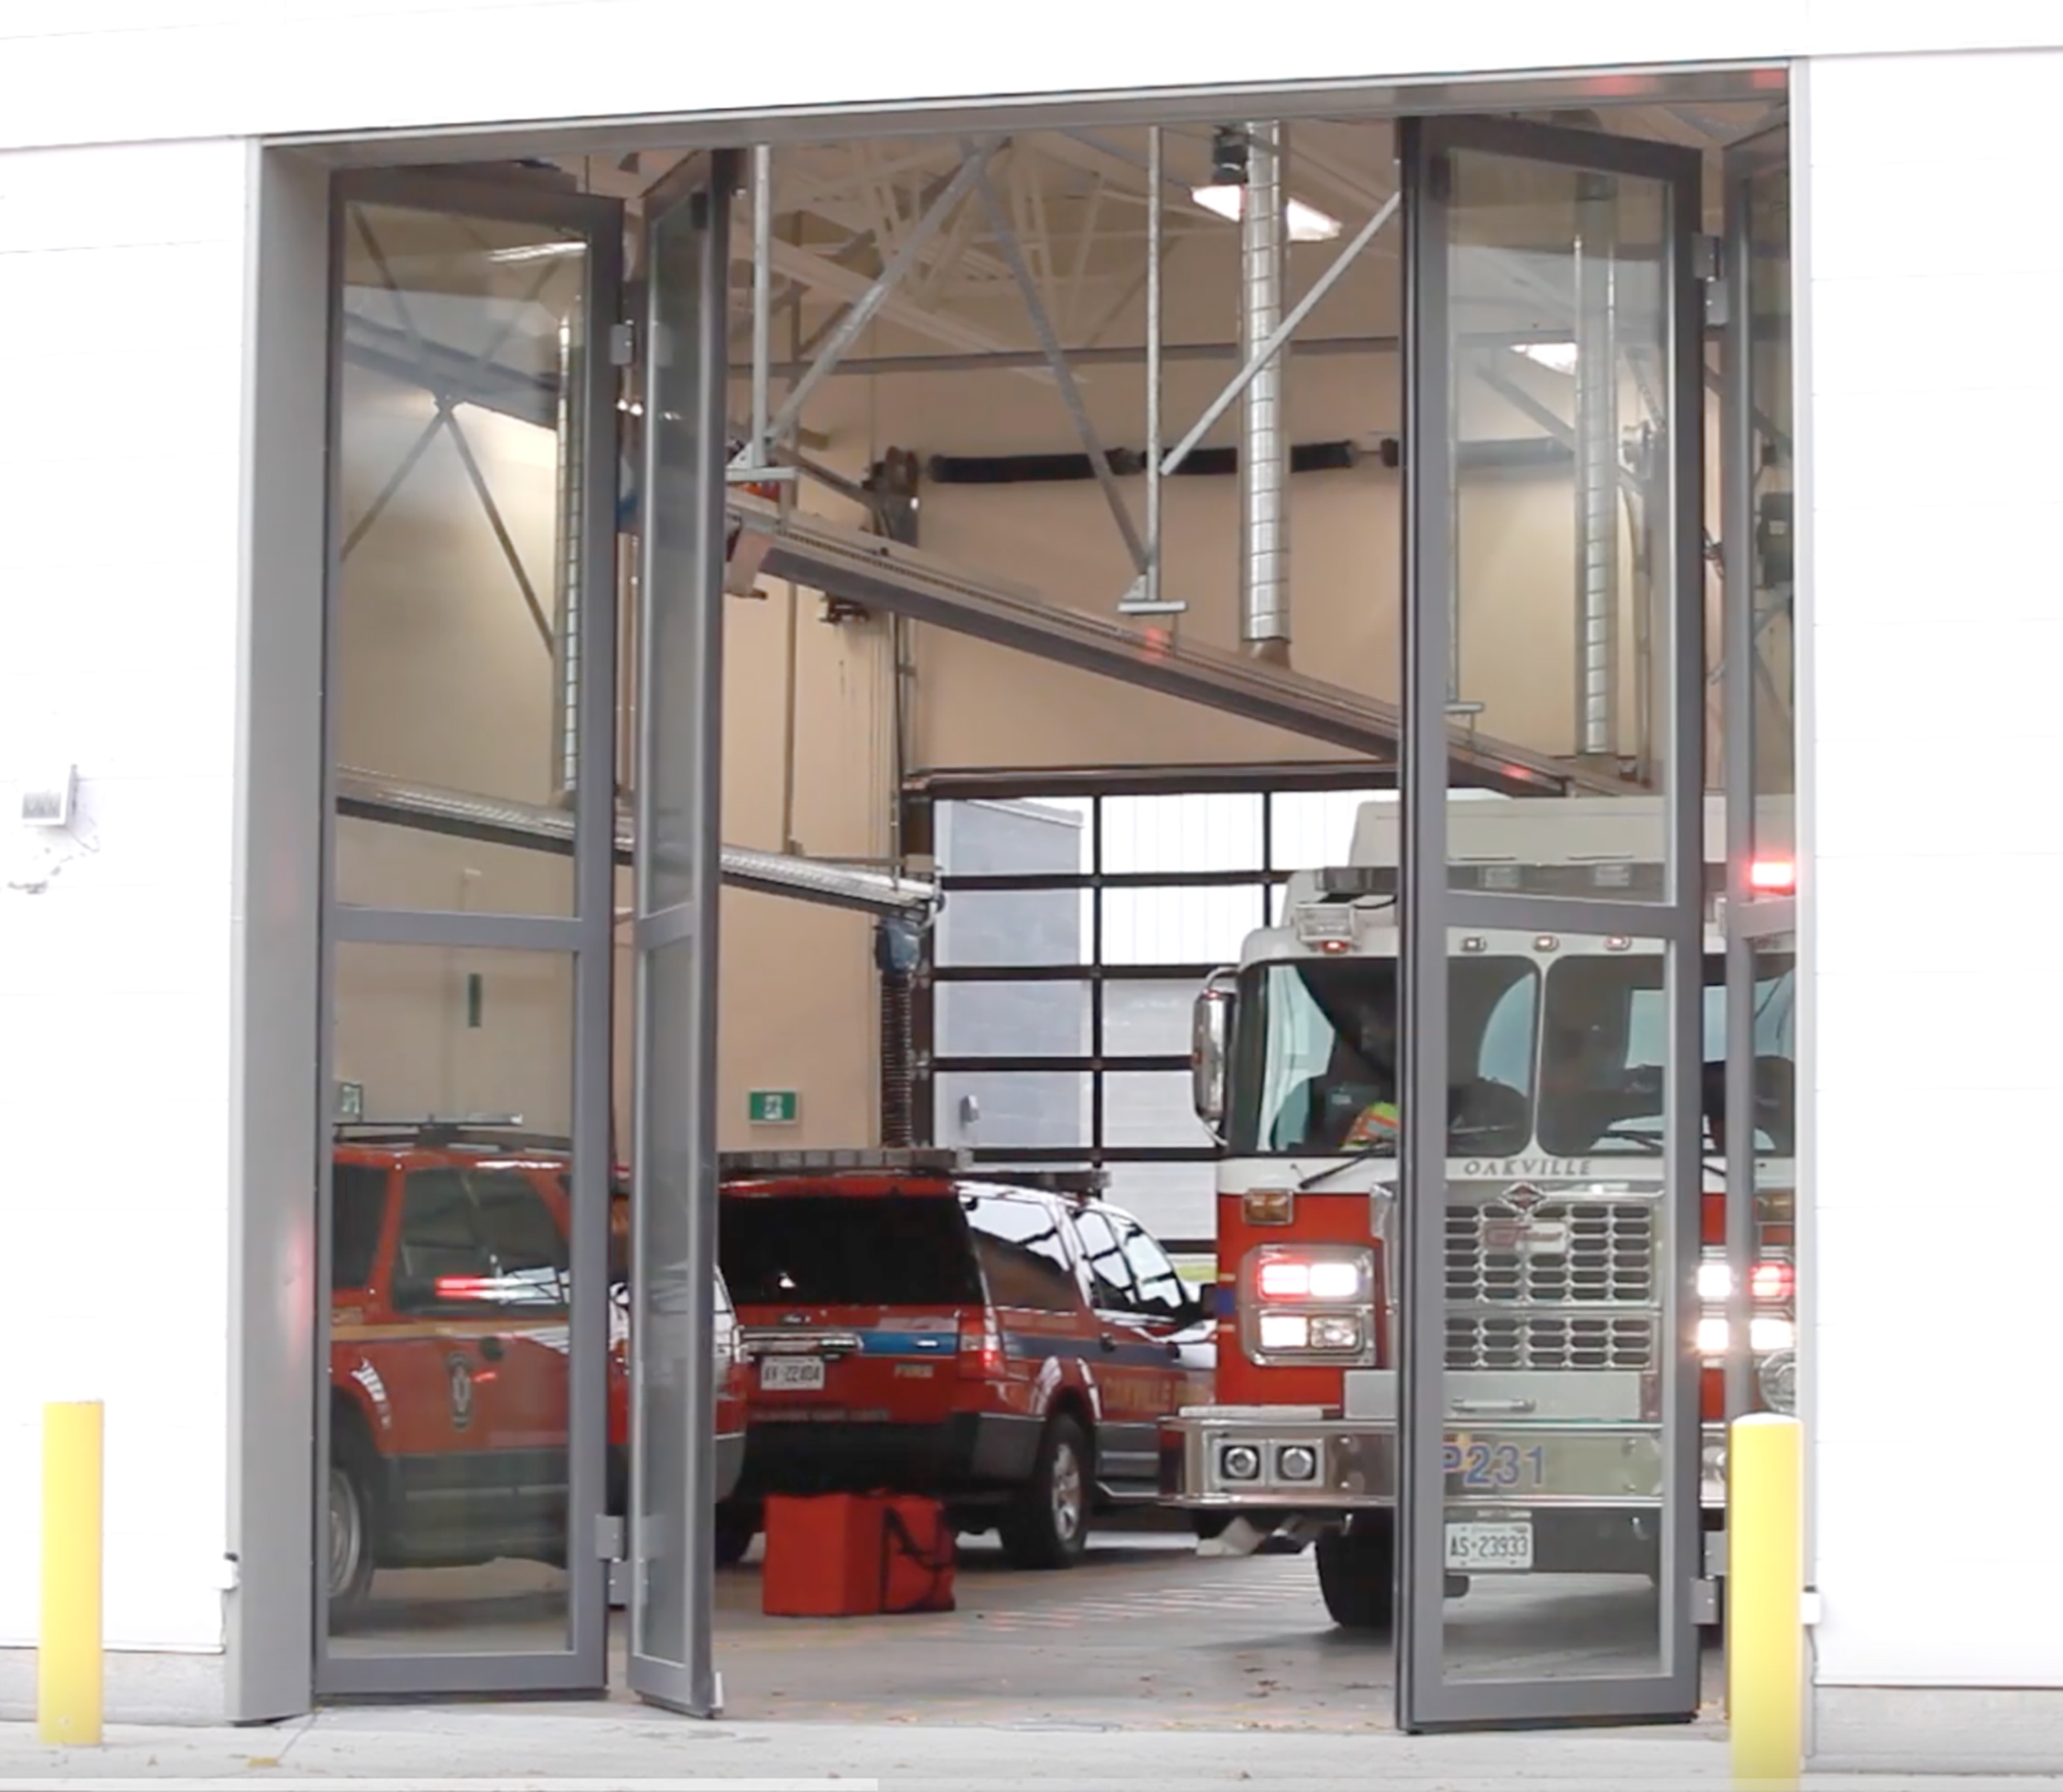 New Oakville fire station, community centre and landmark arena renovation set a new standard for smart access planning.